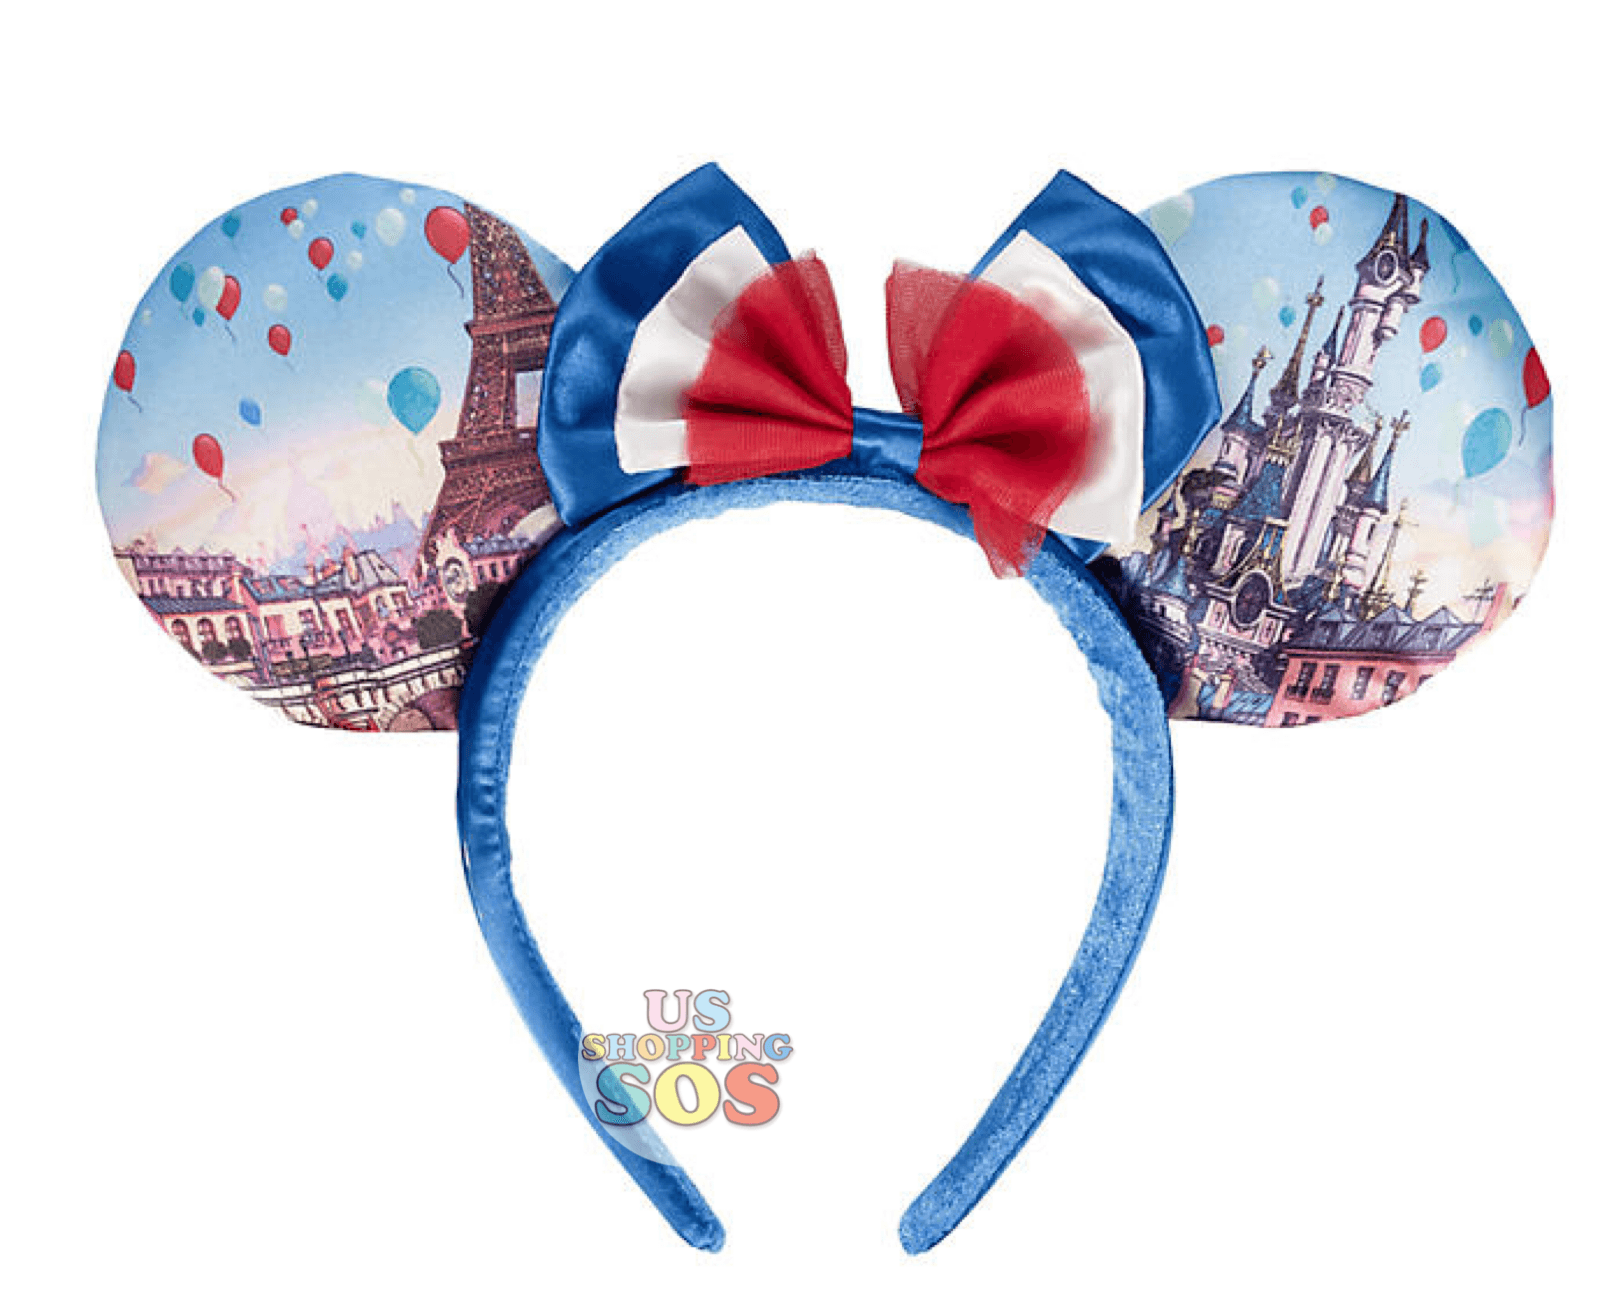 Disneyland Paris - Headband x Disneyland Paris Souvenir